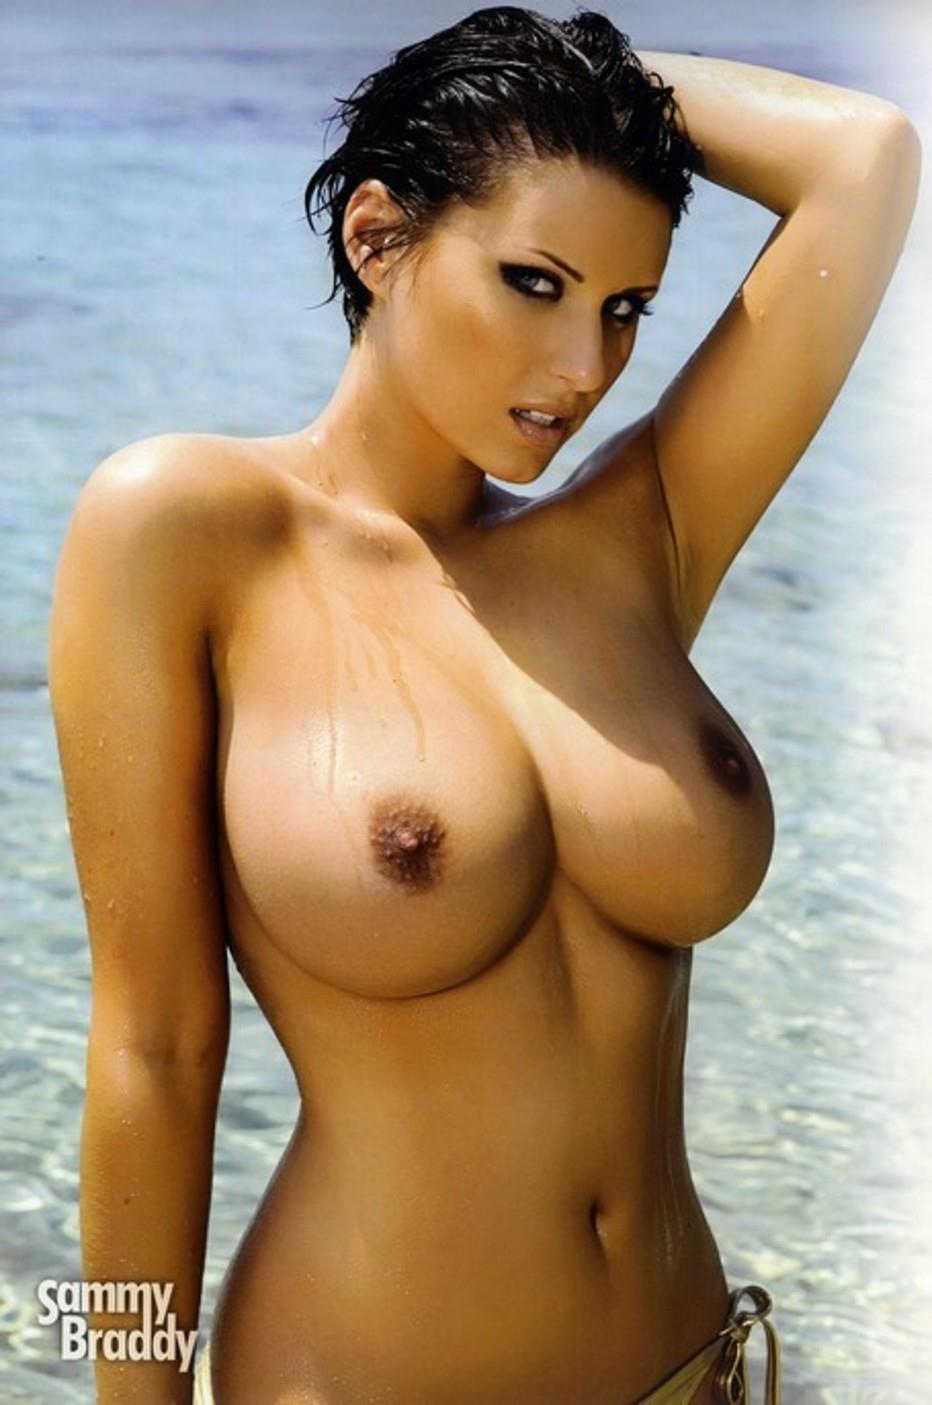 Sammy Braddy - breasts